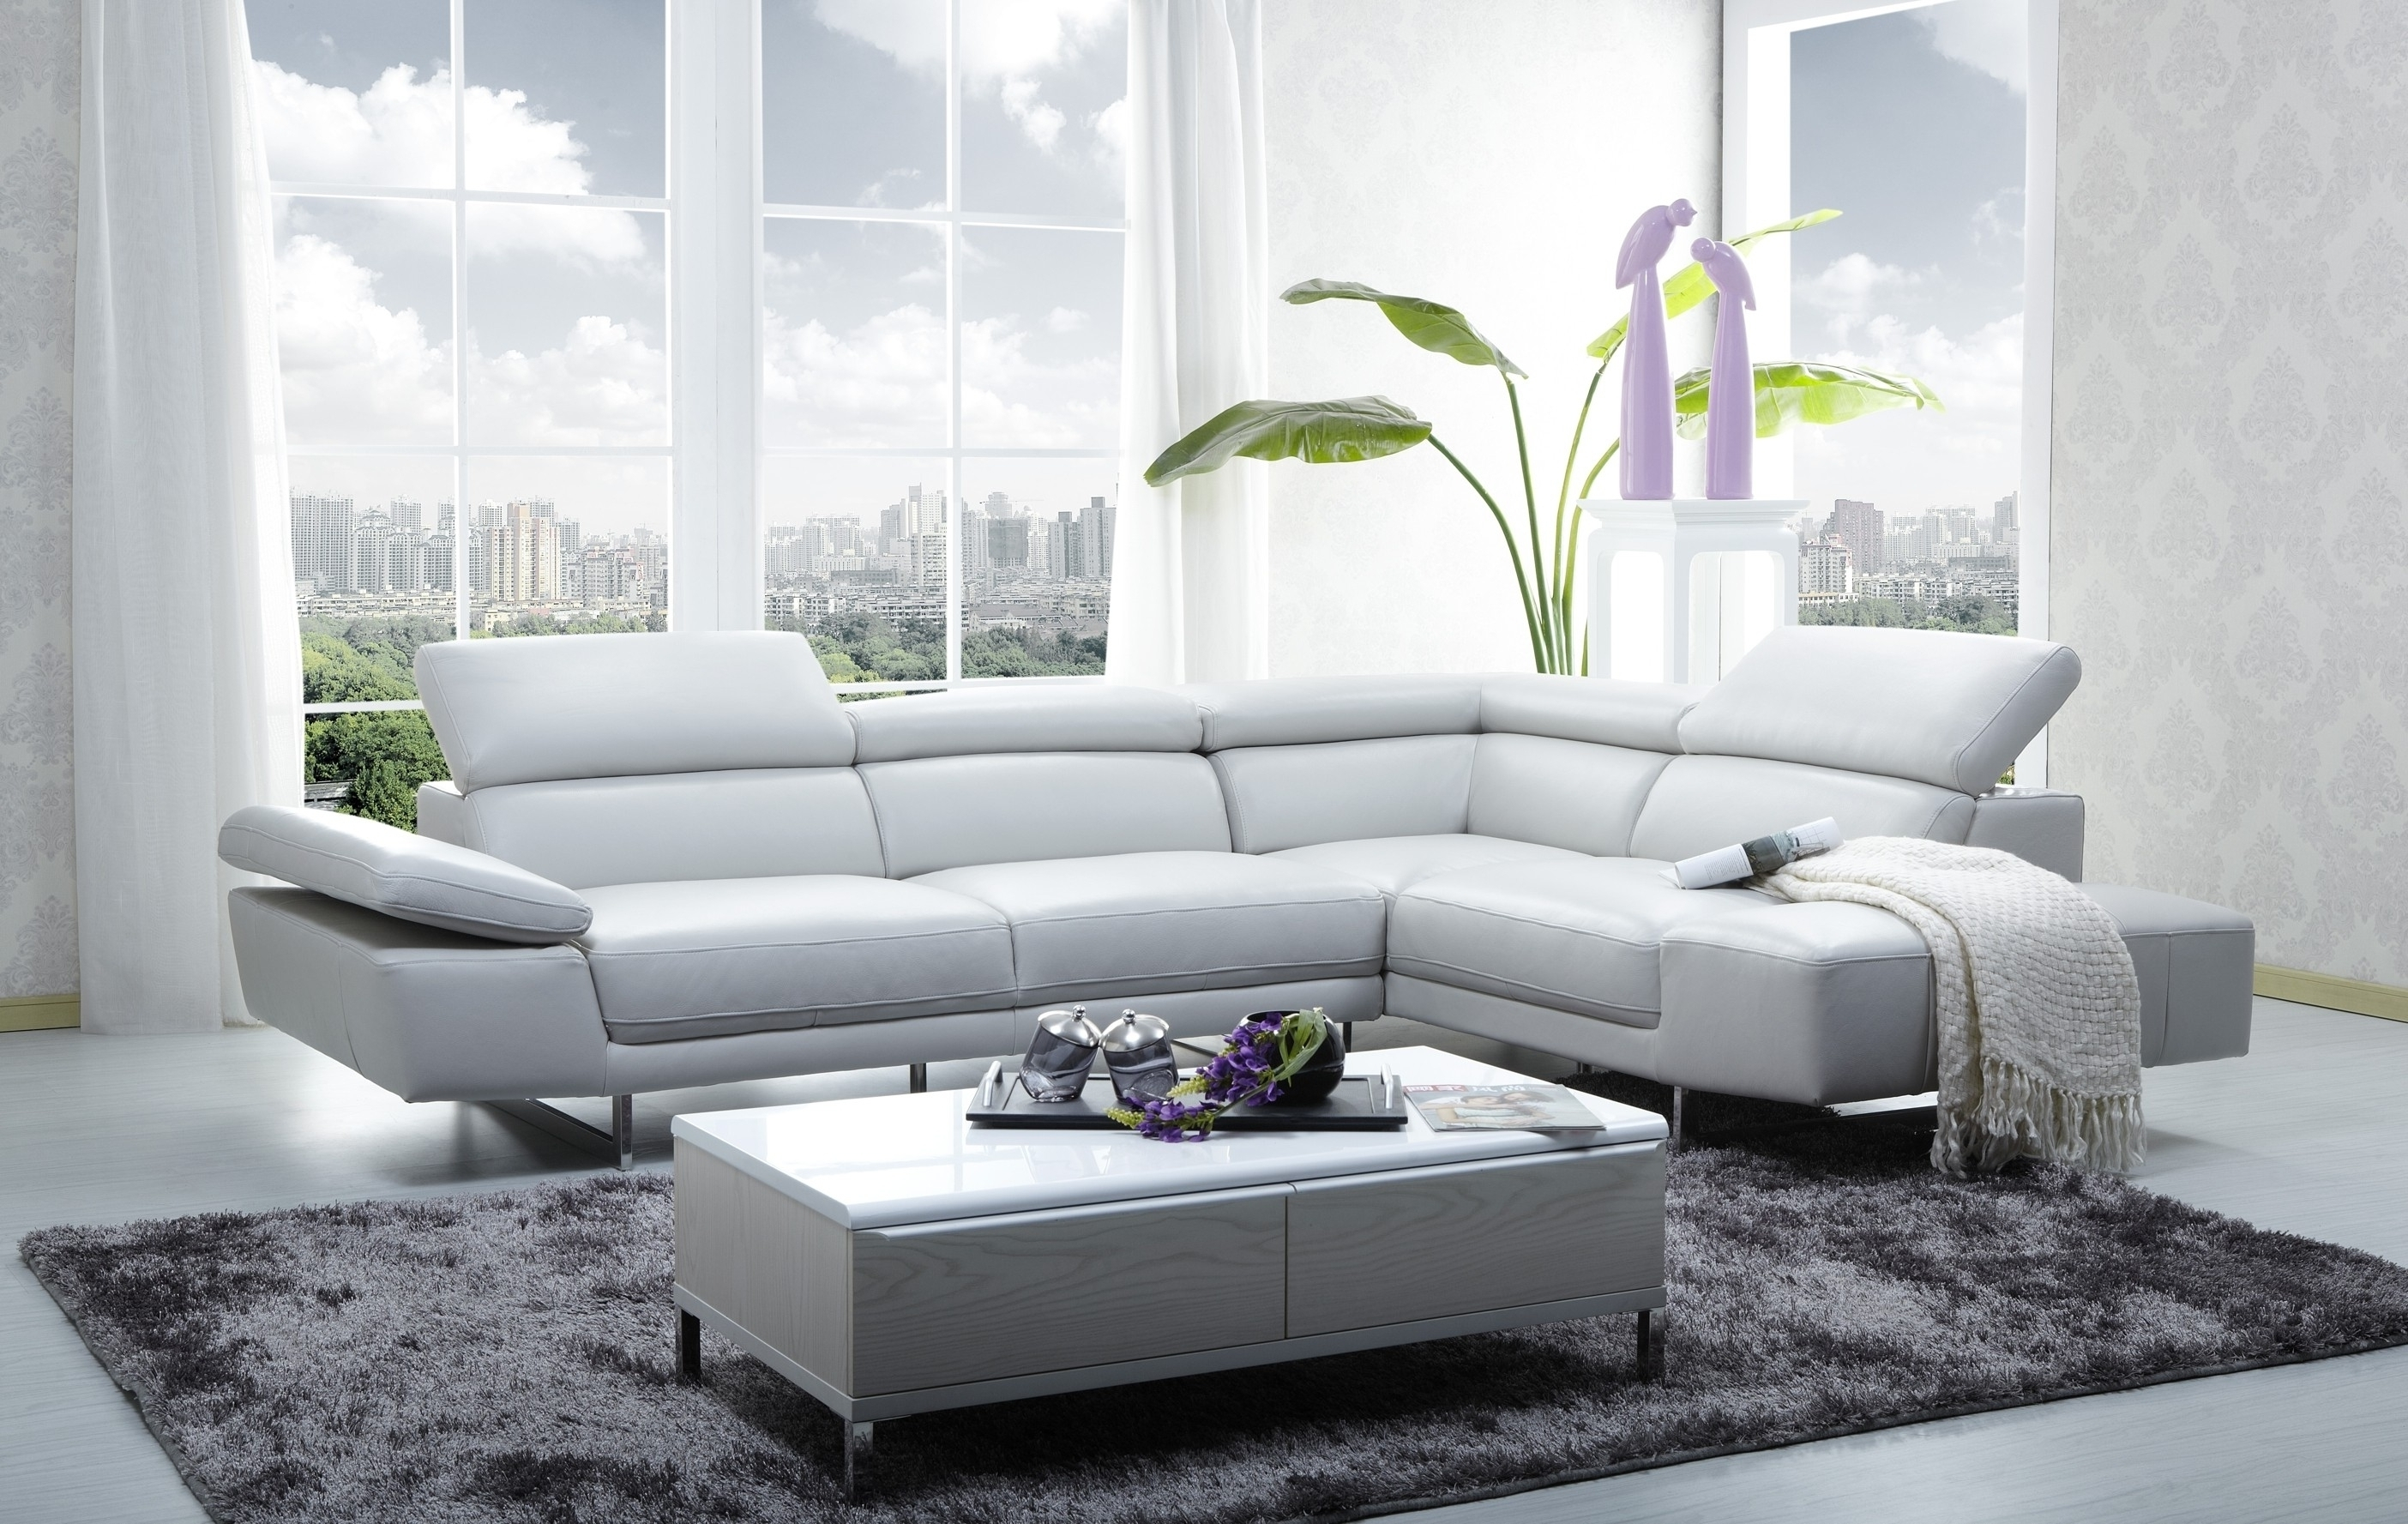 Small Modular Sectional Sofas With Regard To Current Living Room : Modular Sofas For Small Spaces Sectional Sofa For (View 17 of 20)